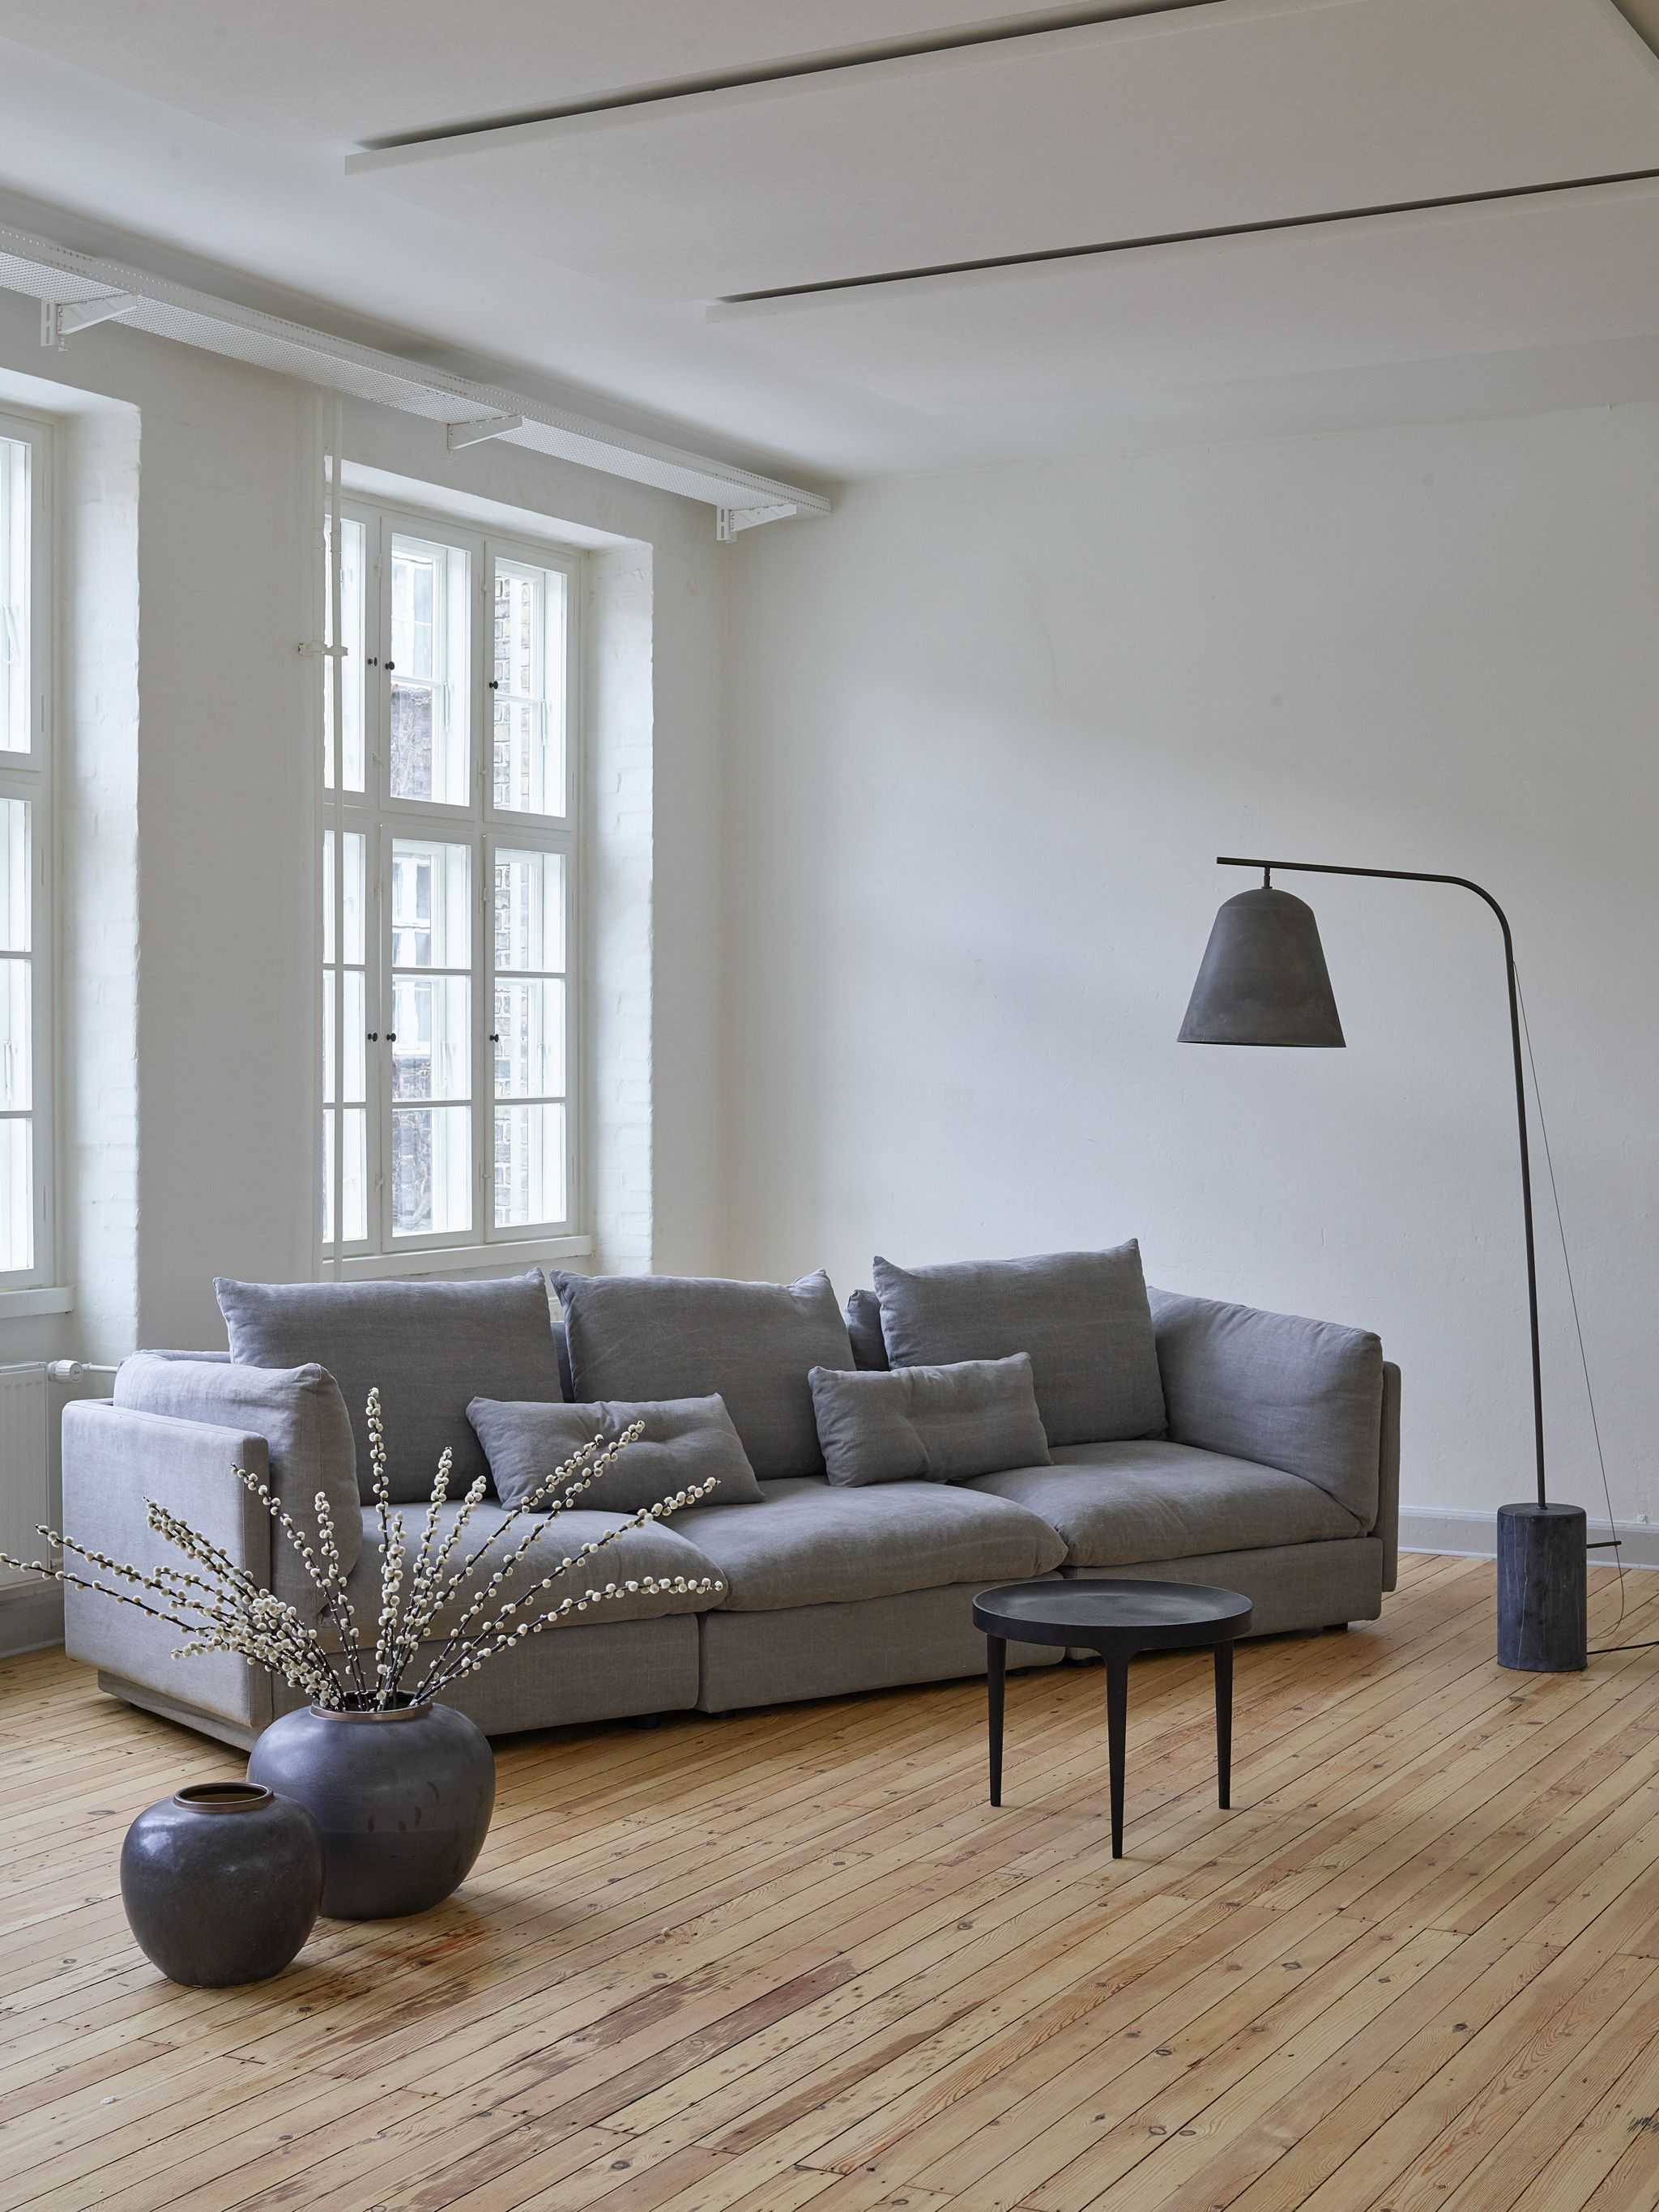 The Macchiato Sofa Ghost Coffee Table and the Line Two lamp in